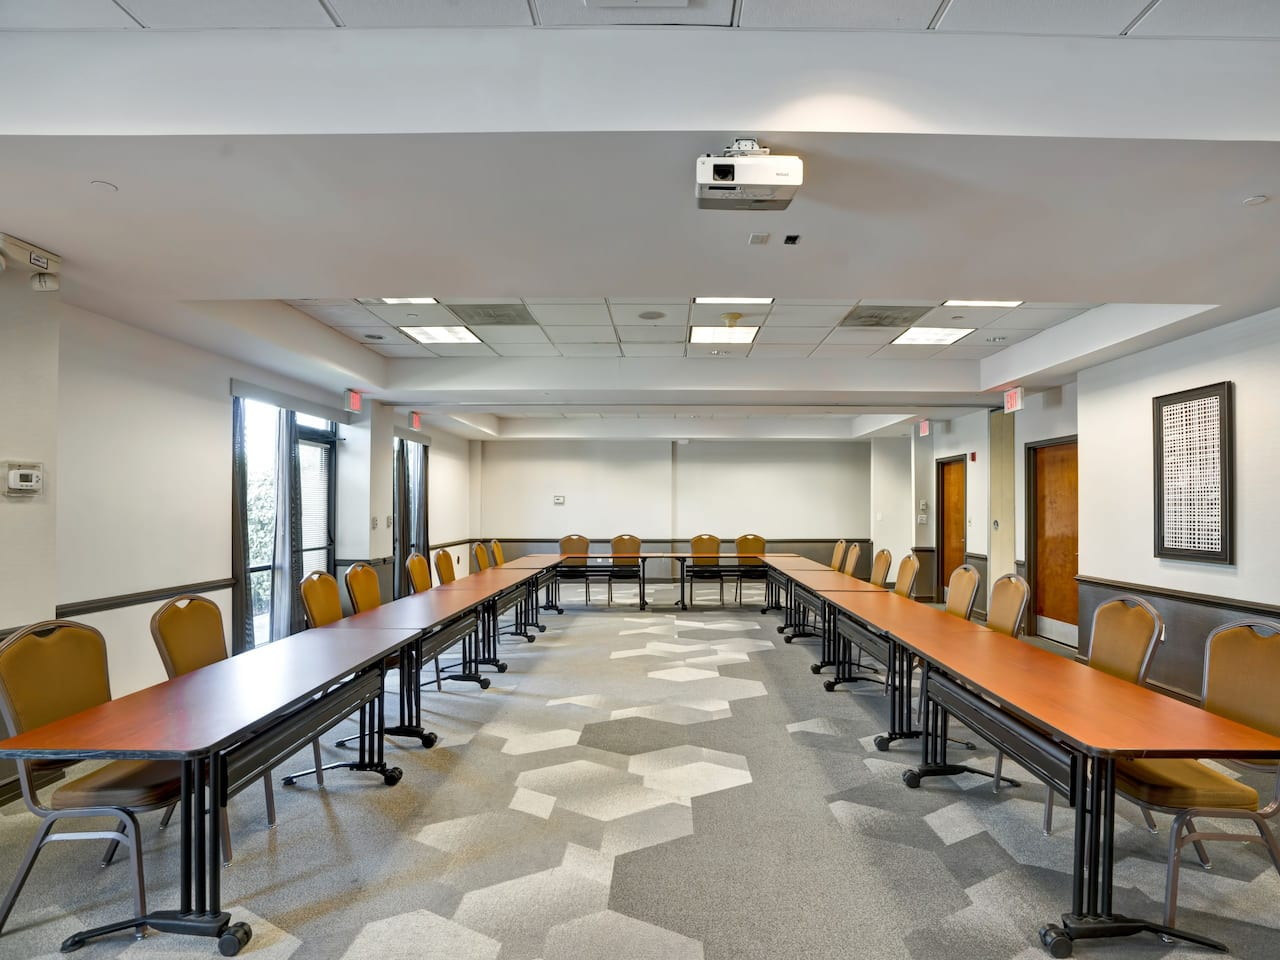 Hyatt Place Baltimore/BWI Airport Meeting Room U-Shape